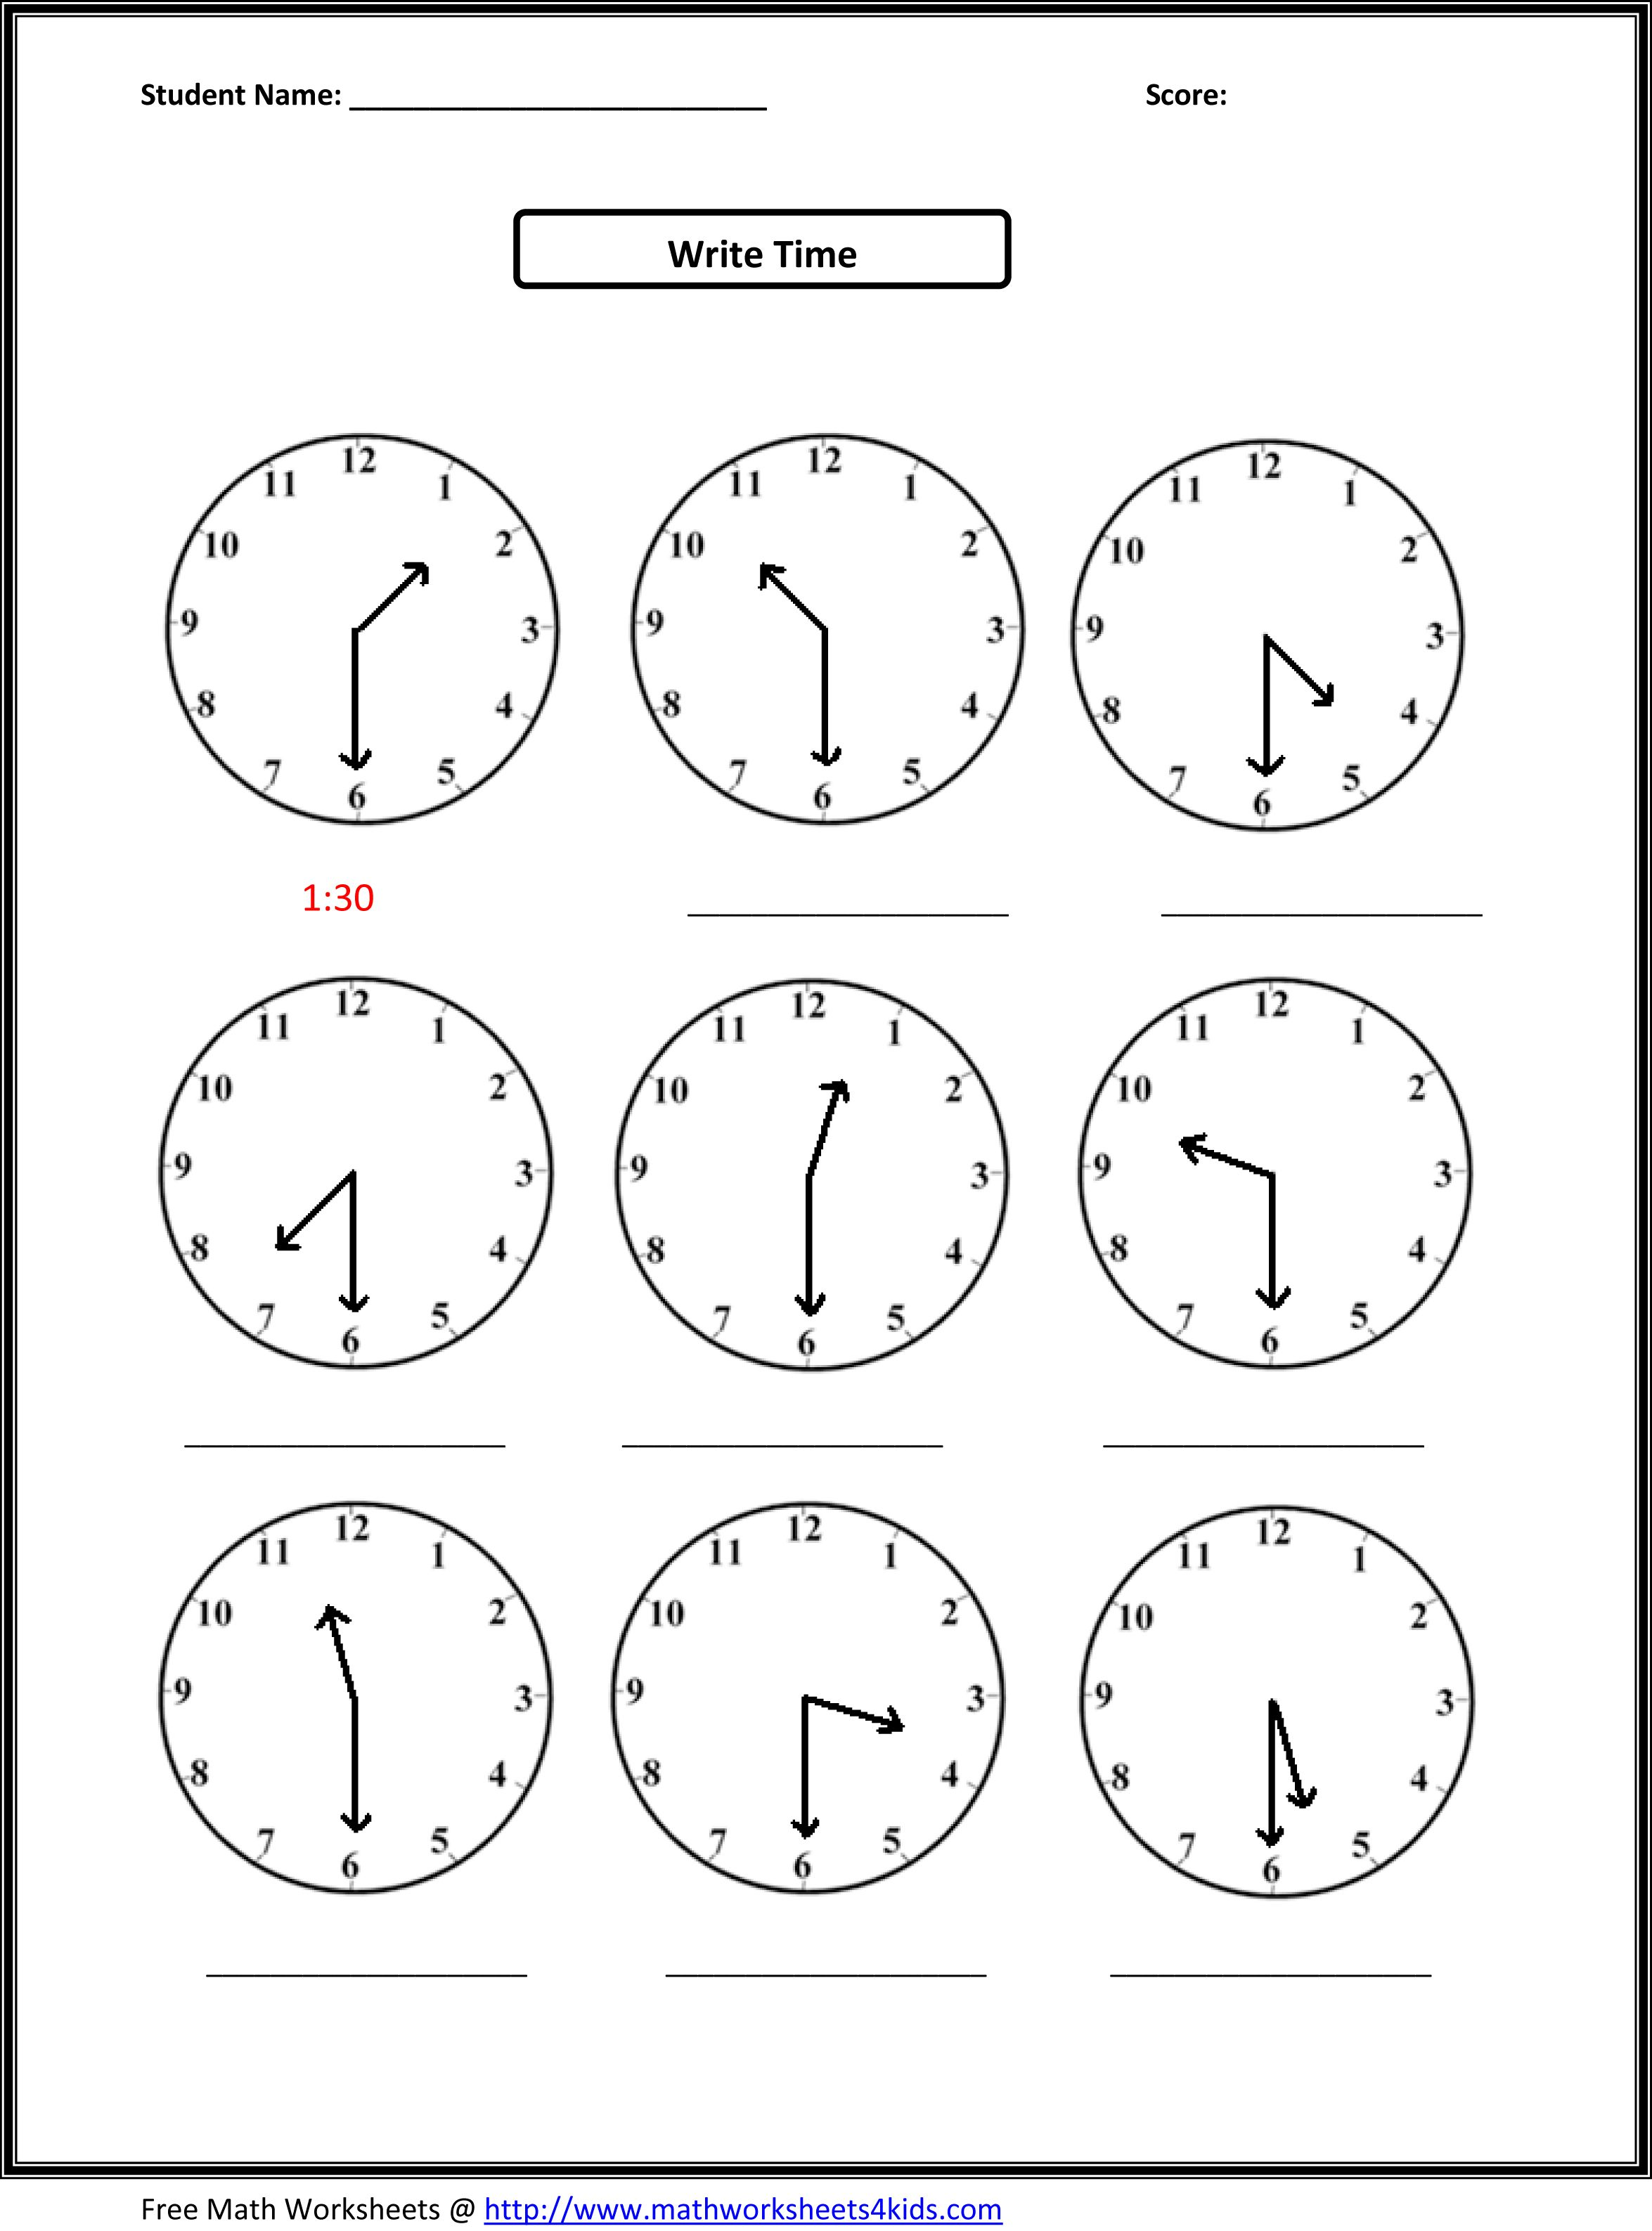 Weirdmailus  Nice Worksheet On Time For Grade   Reocurent With Extraordinary Free Printable Telling Time Worksheets Nd Grade  Reocurent With Lovely Maths Practice Worksheets Also Nelson Handwriting Worksheets Printable In Addition Adjusting Entries Worksheet And Schoolhousetech Math Worksheets As Well As Language Arts Grade  Worksheets Additionally Year Six English Worksheets From Reocurentcom With Weirdmailus  Extraordinary Worksheet On Time For Grade   Reocurent With Lovely Free Printable Telling Time Worksheets Nd Grade  Reocurent And Nice Maths Practice Worksheets Also Nelson Handwriting Worksheets Printable In Addition Adjusting Entries Worksheet From Reocurentcom